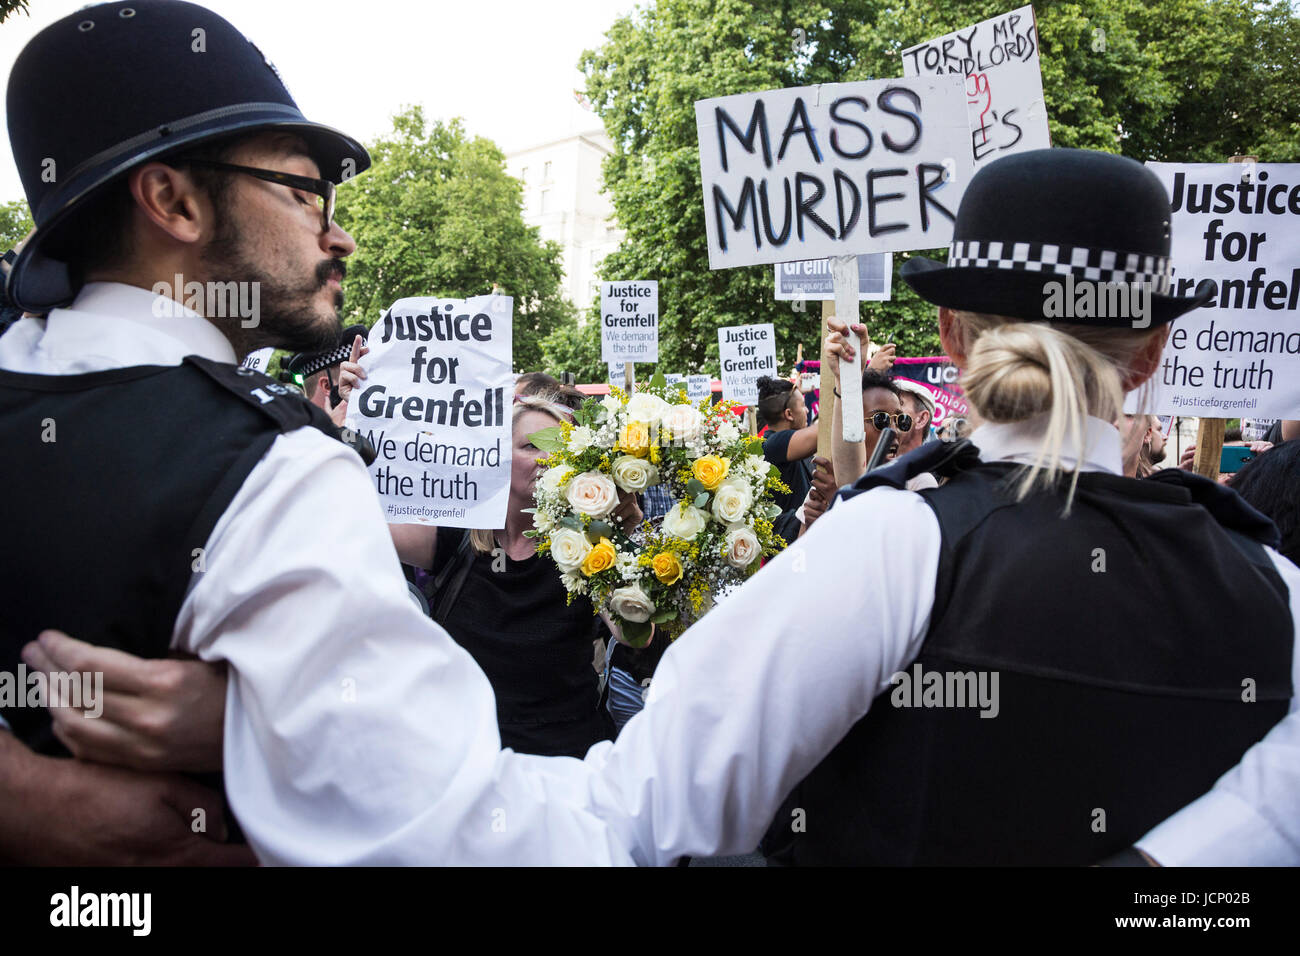 London, UK. 16th June, 2017. Justice for Grenfell Protest outside Downing Street. Protesters call for a full investivation Stock Photo